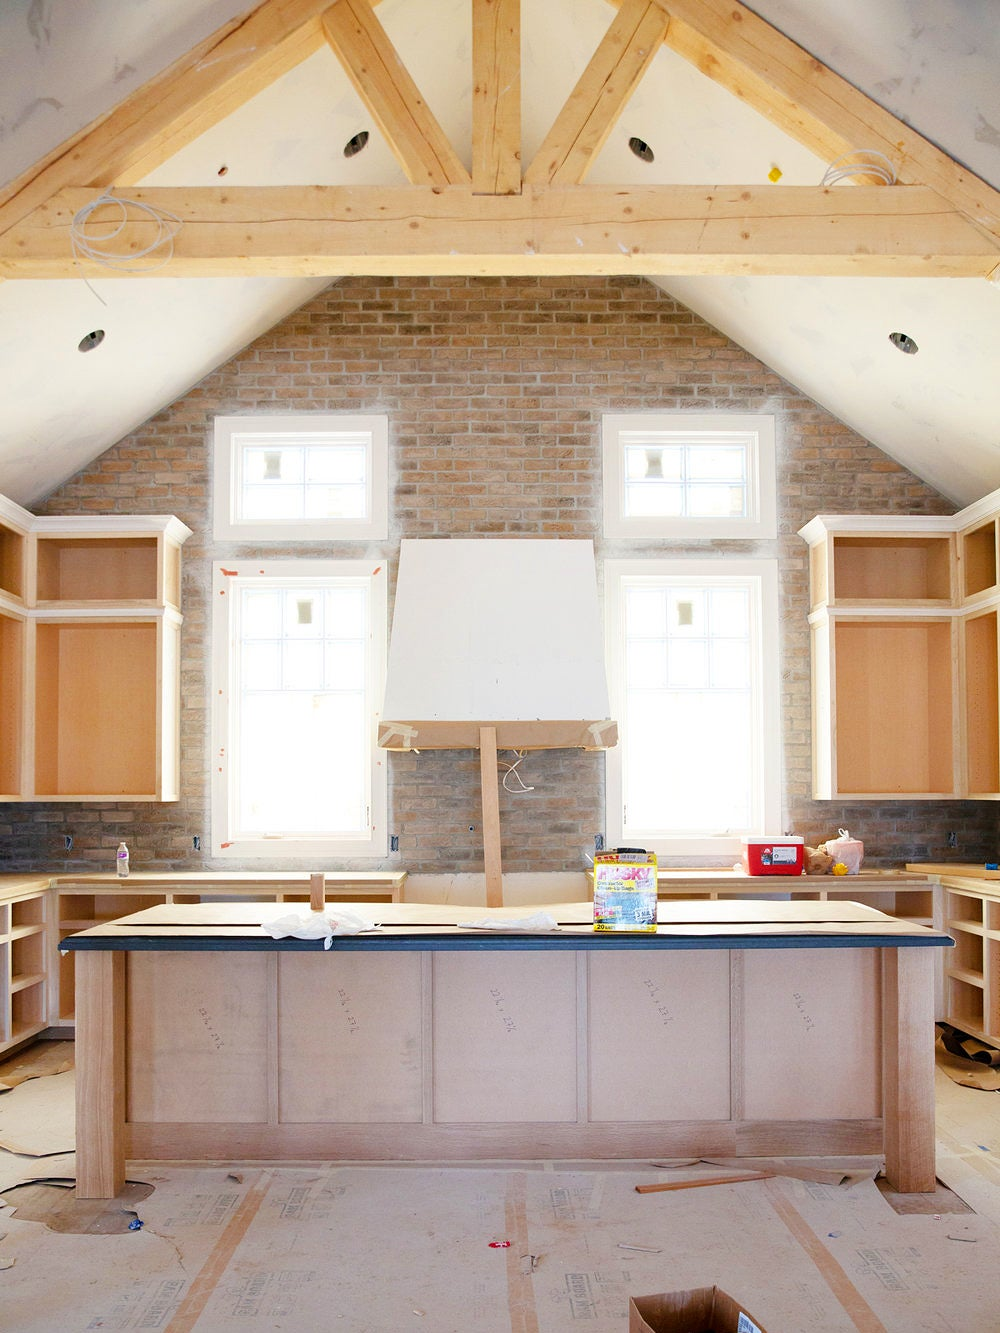 00-FEATURE-unfinished-kitchen-cabinets-domino